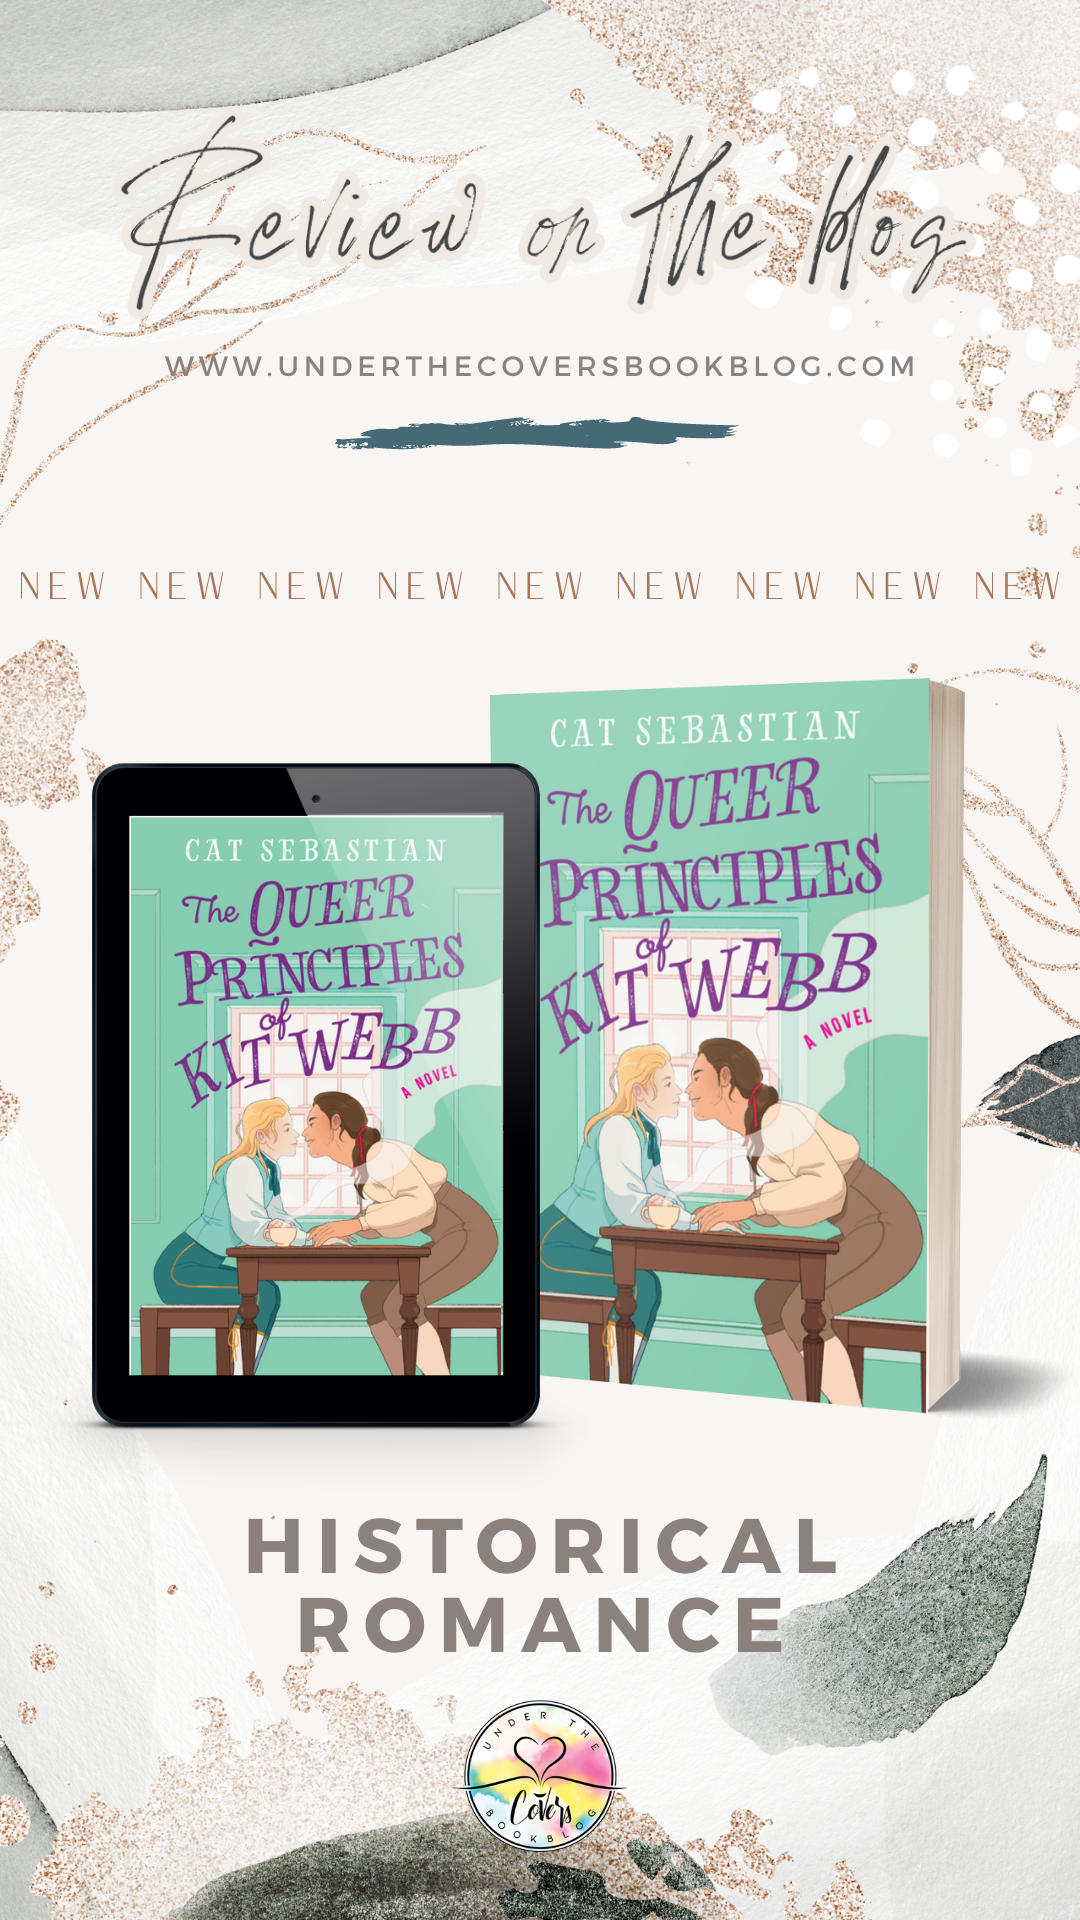 ARC Review: The Queer Principles of Kit Webb by Cat Sebastian